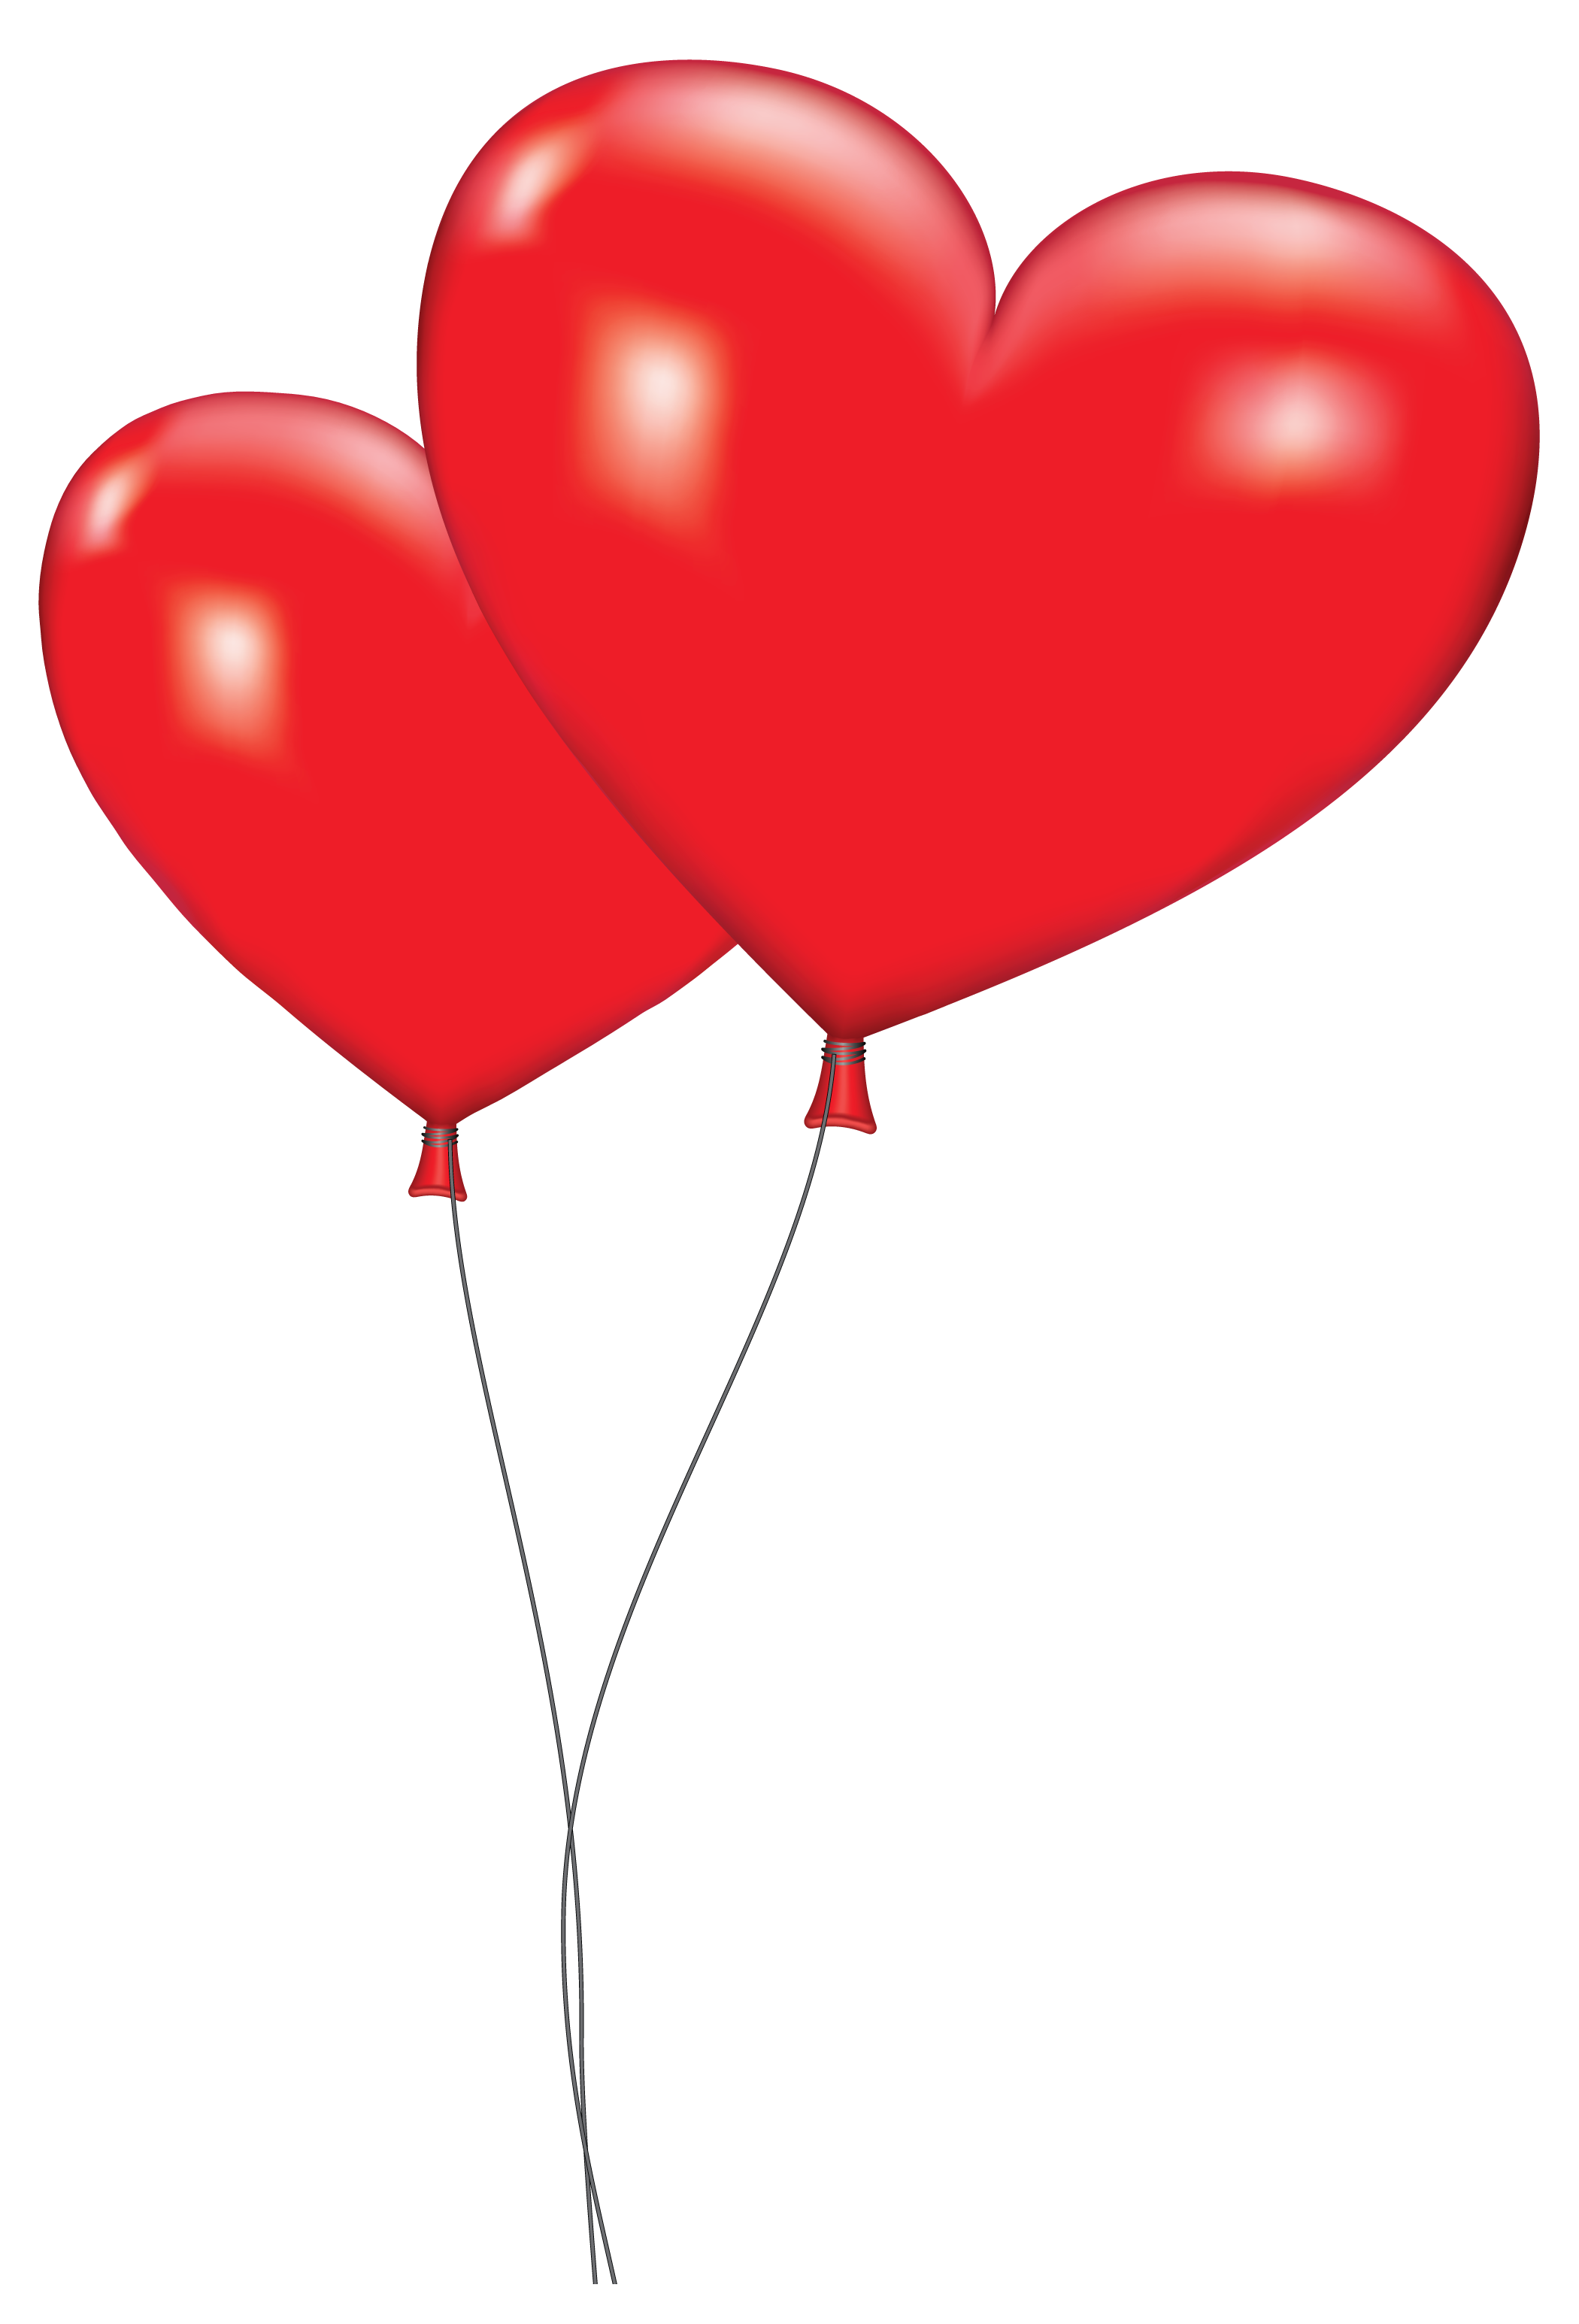 Orange large red heart. Hearts clipart hot air balloon